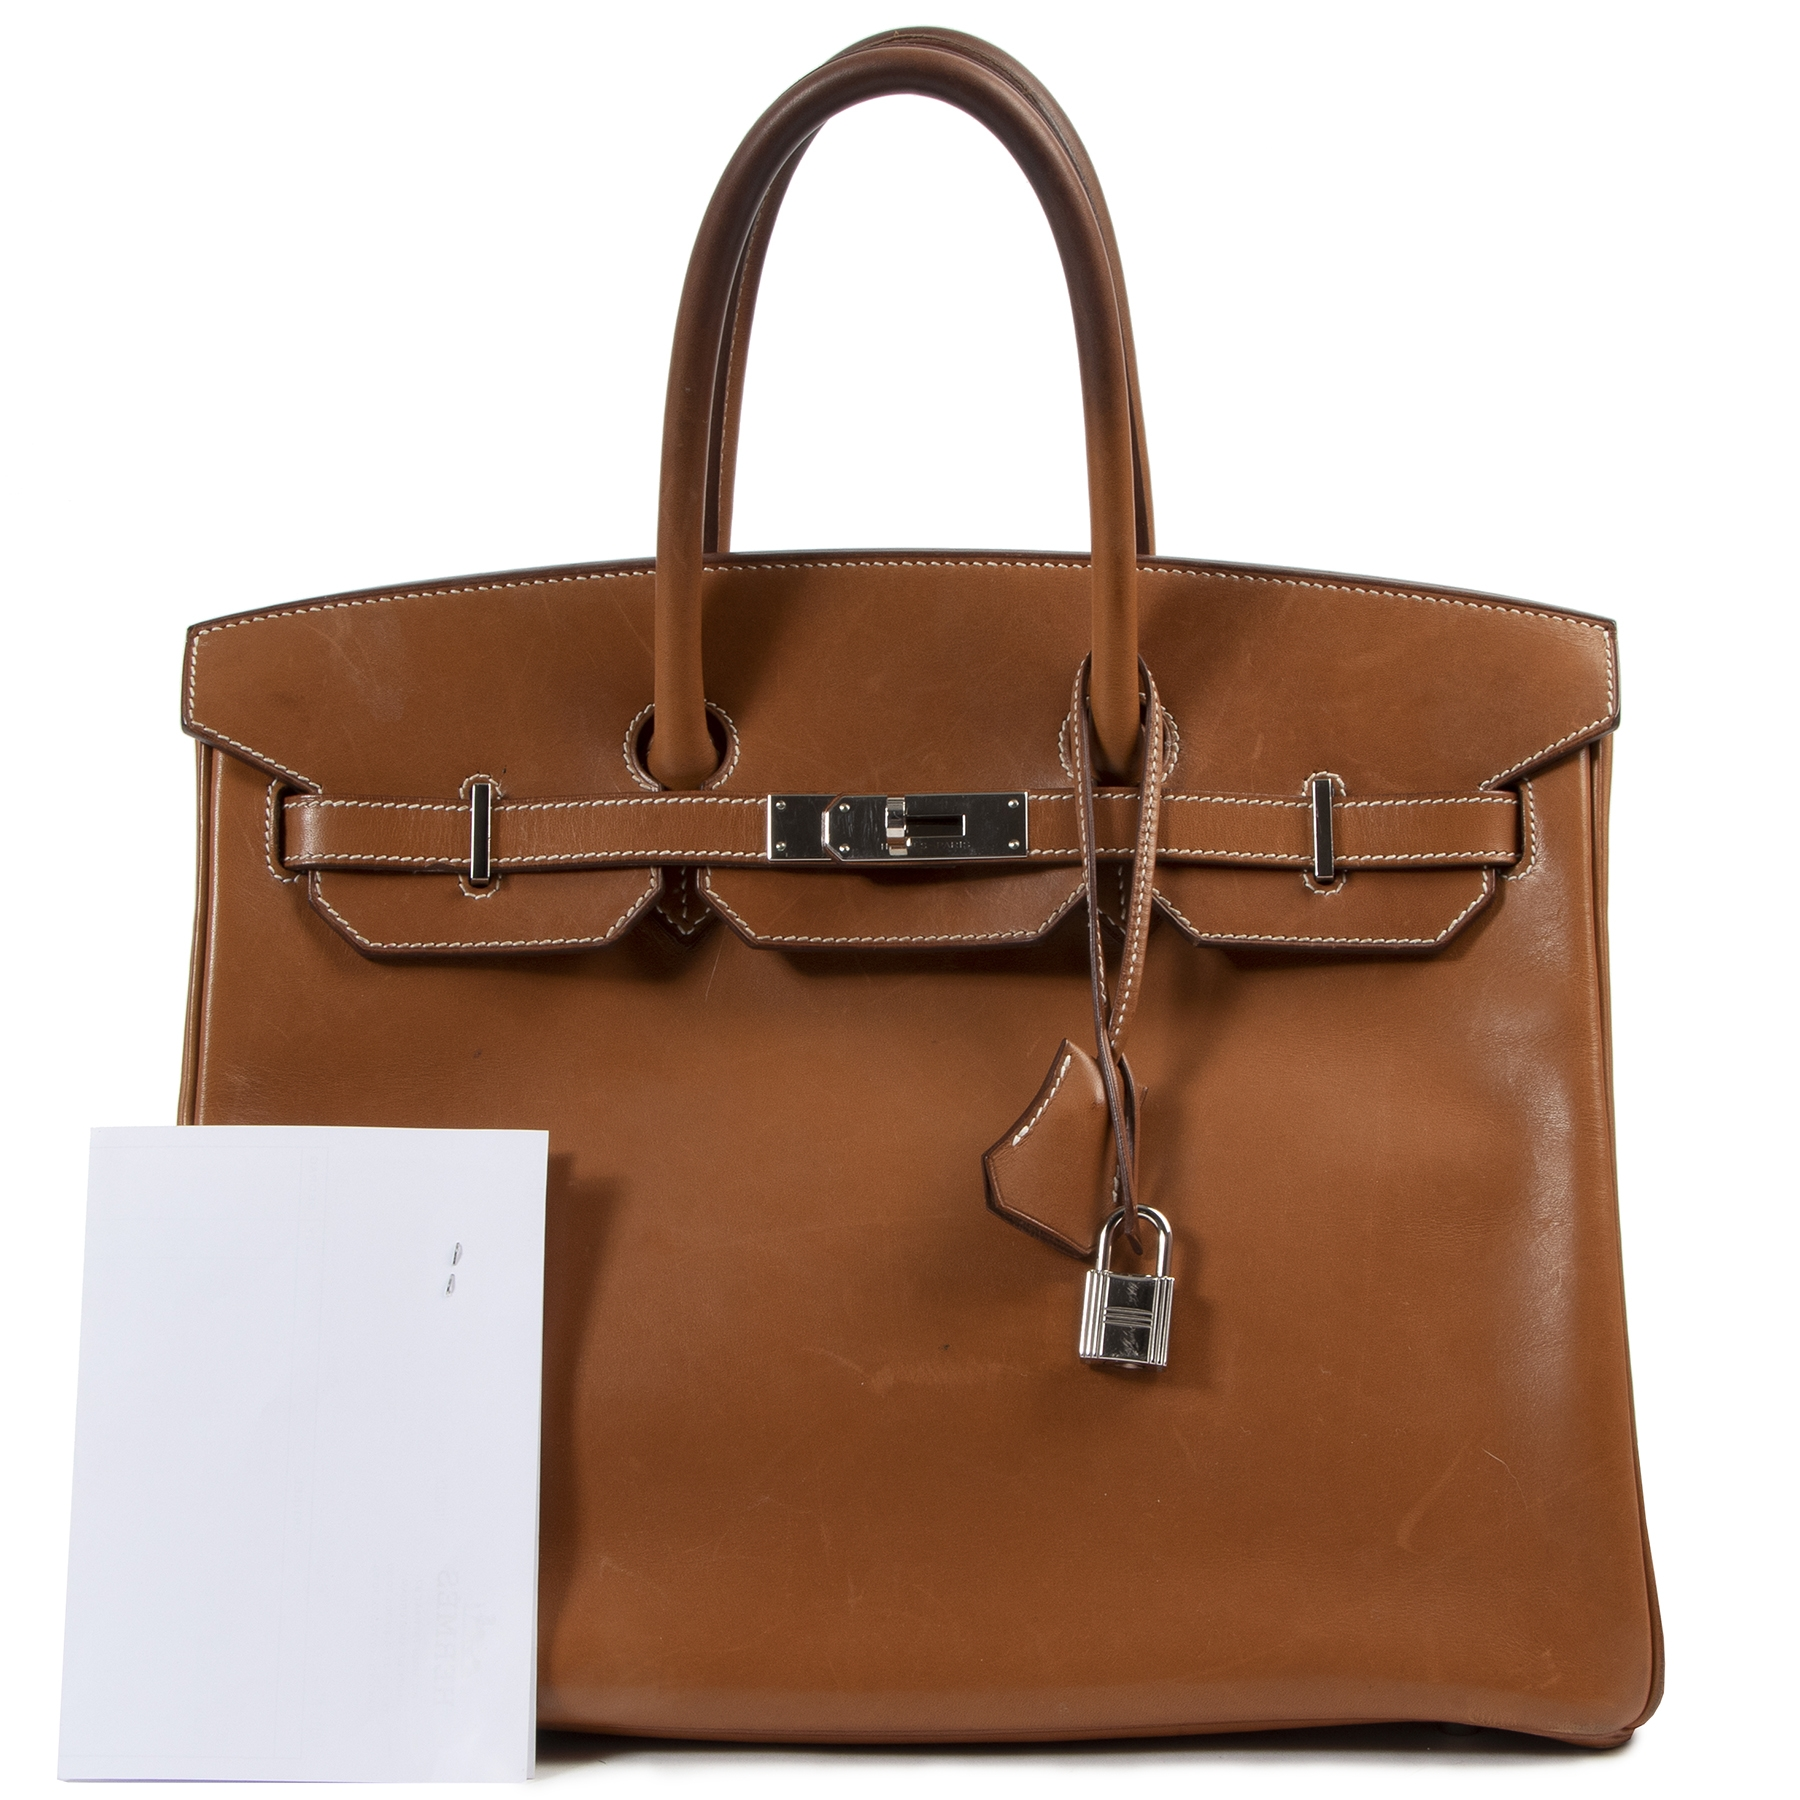 Hermès Birkin 35 Barenia Fauve PHW  for the best price at Labellov secondhand luxury in Antwerp